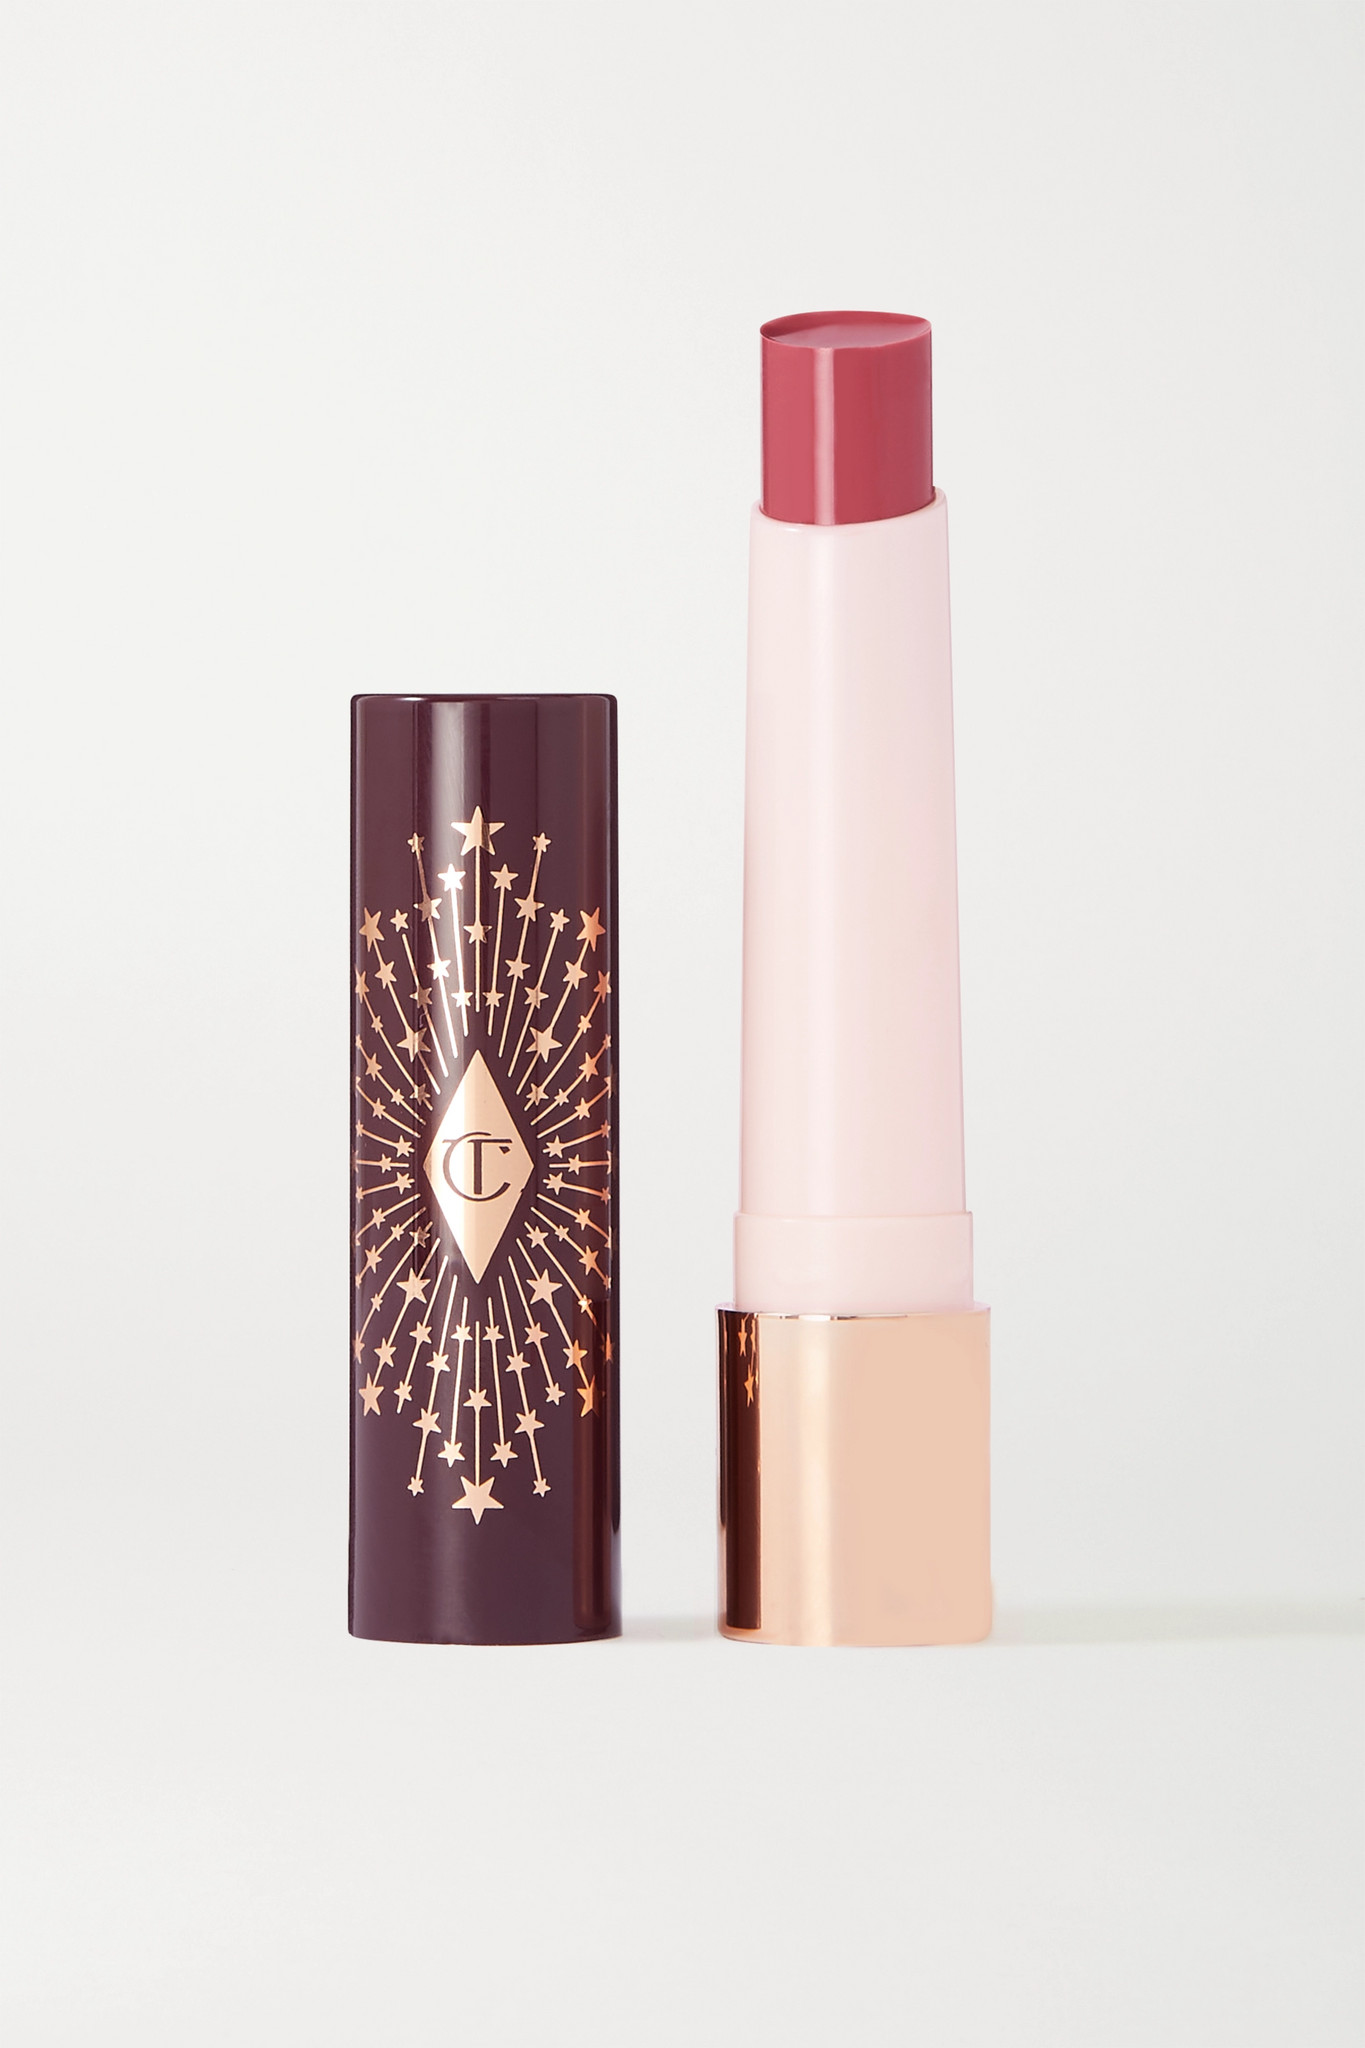 CHARLOTTE TILBURY - Hyaluronic Happikiss Lipstick Balm - Romance Kiss - Red - One size